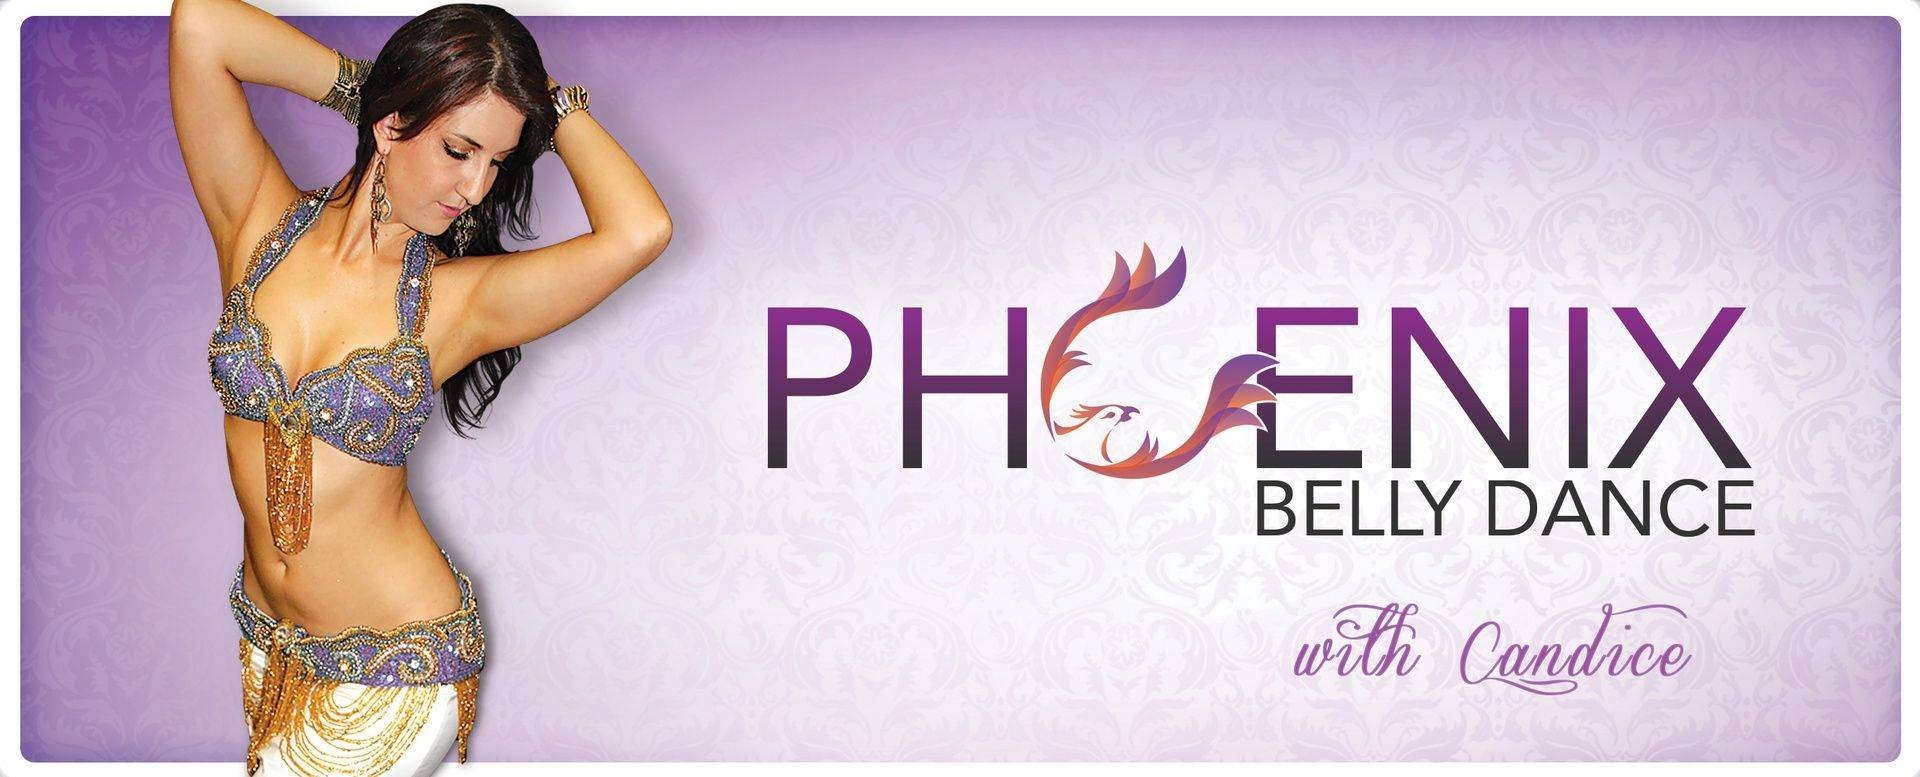 Purple Header for Phoenix Belly Dance Classes, Performances, and Costumes